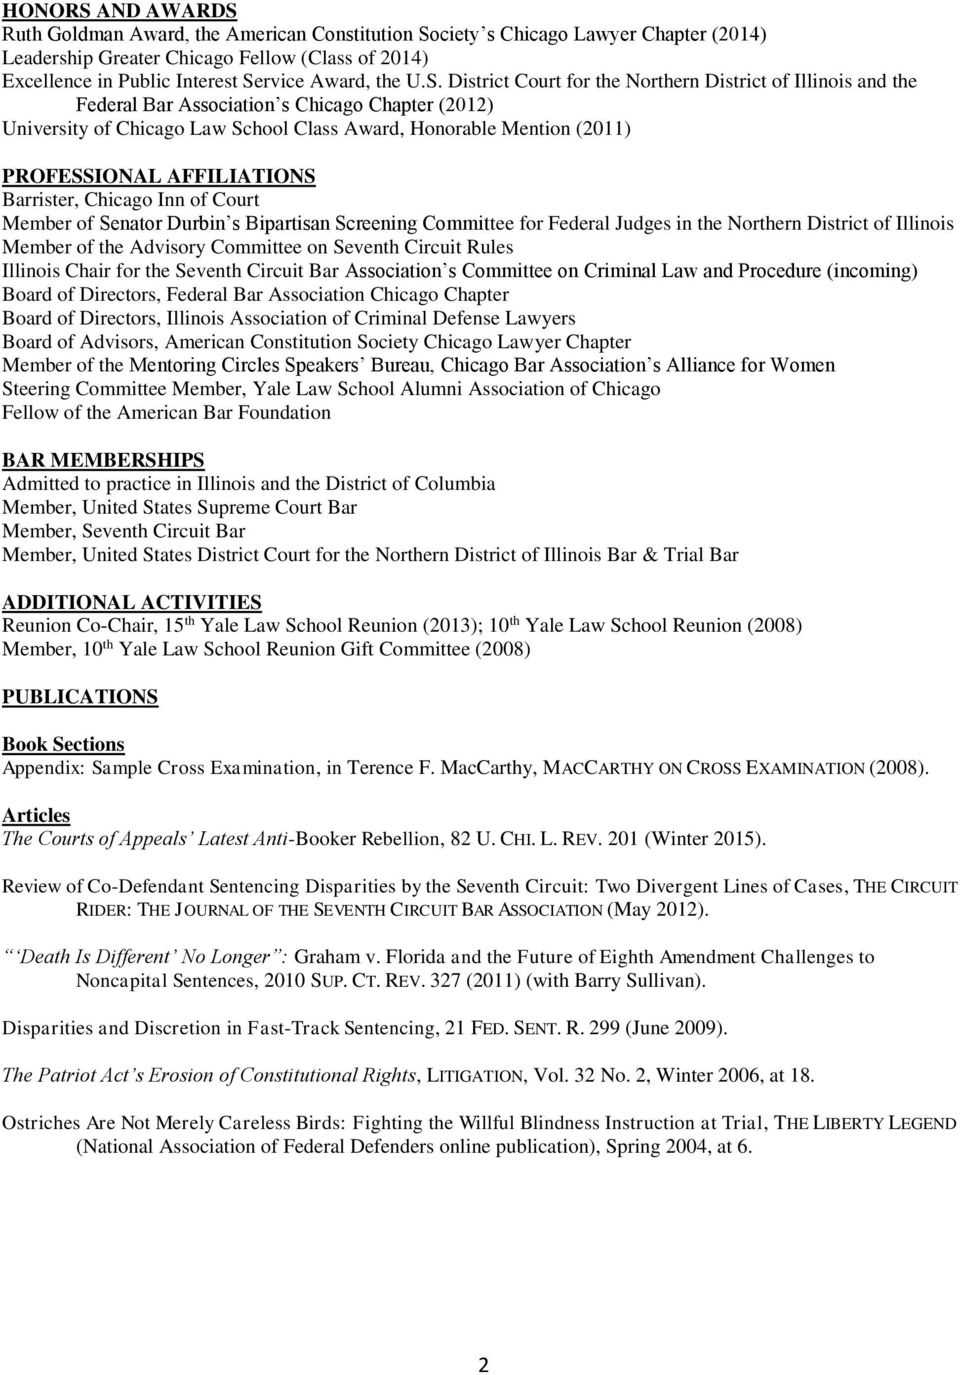 District Court for the Northern District of Illinois and the Federal Bar Association s Chicago Chapter (2012) University of Chicago Law School Class Award, Honorable Mention (2011) PROFESSIONAL